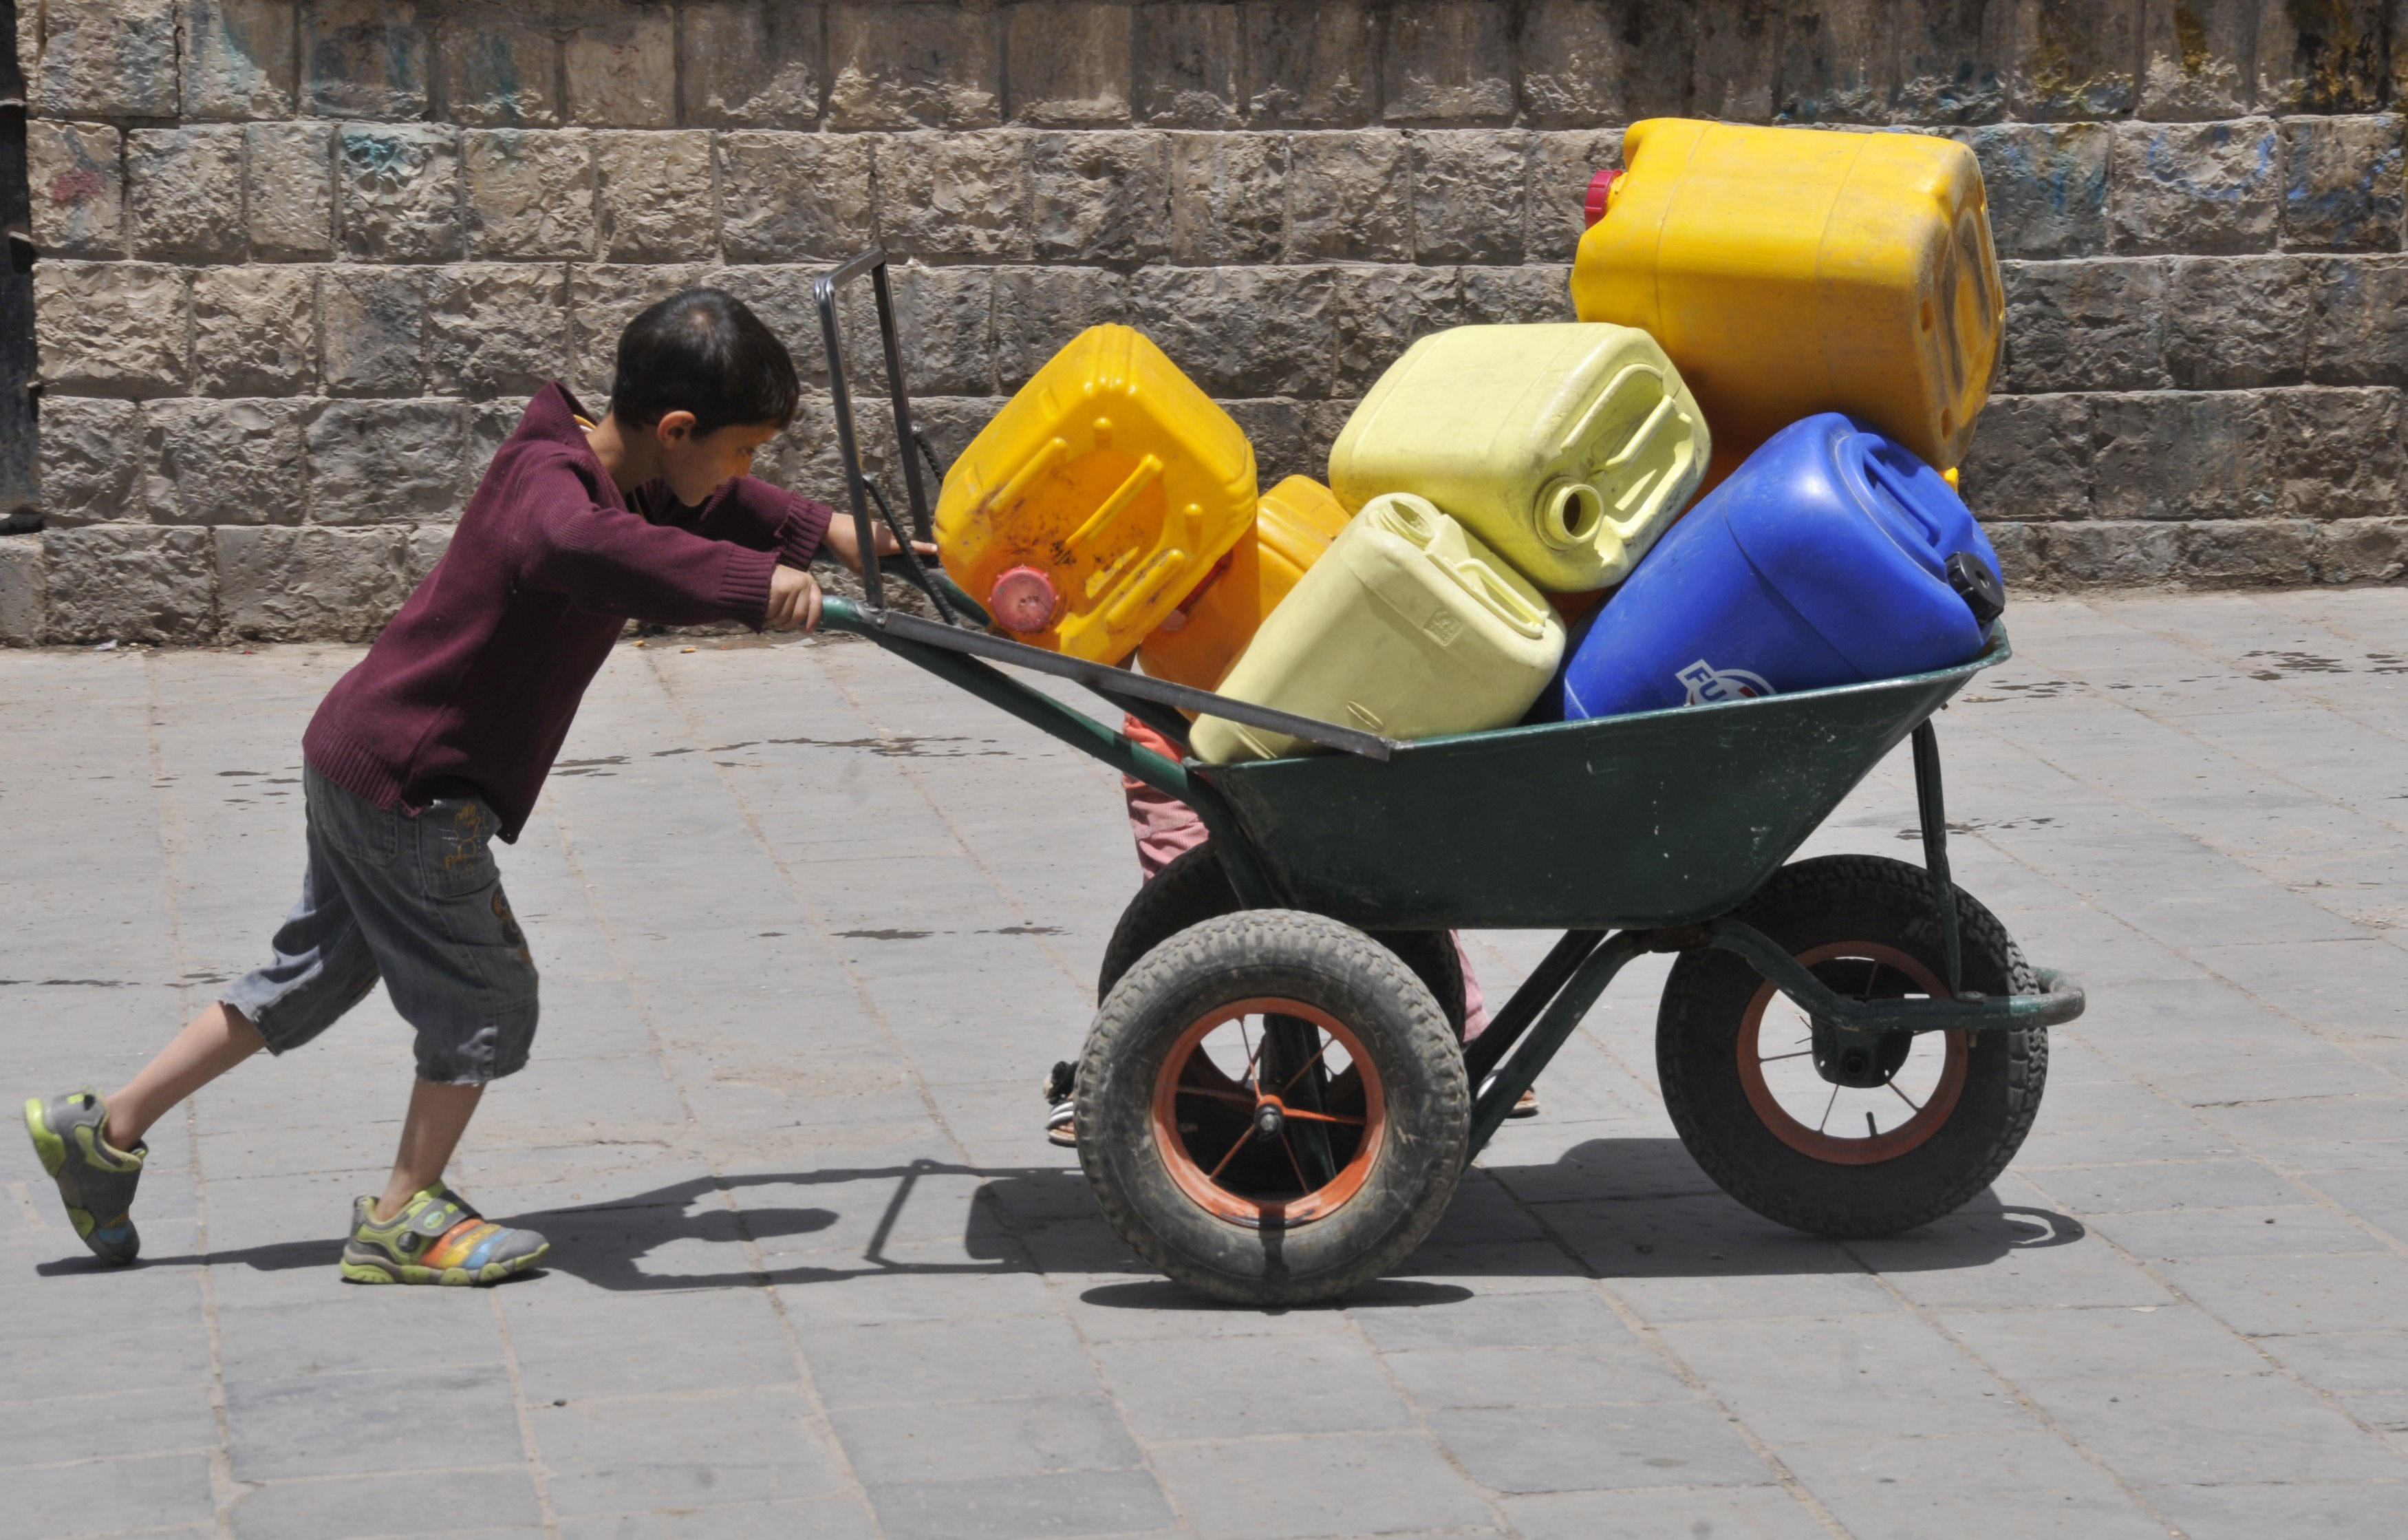 On 11 May 2015, a boy pushes a wheelbarrow filled with jerrycans in Sana'a, the capital of Yemen. 